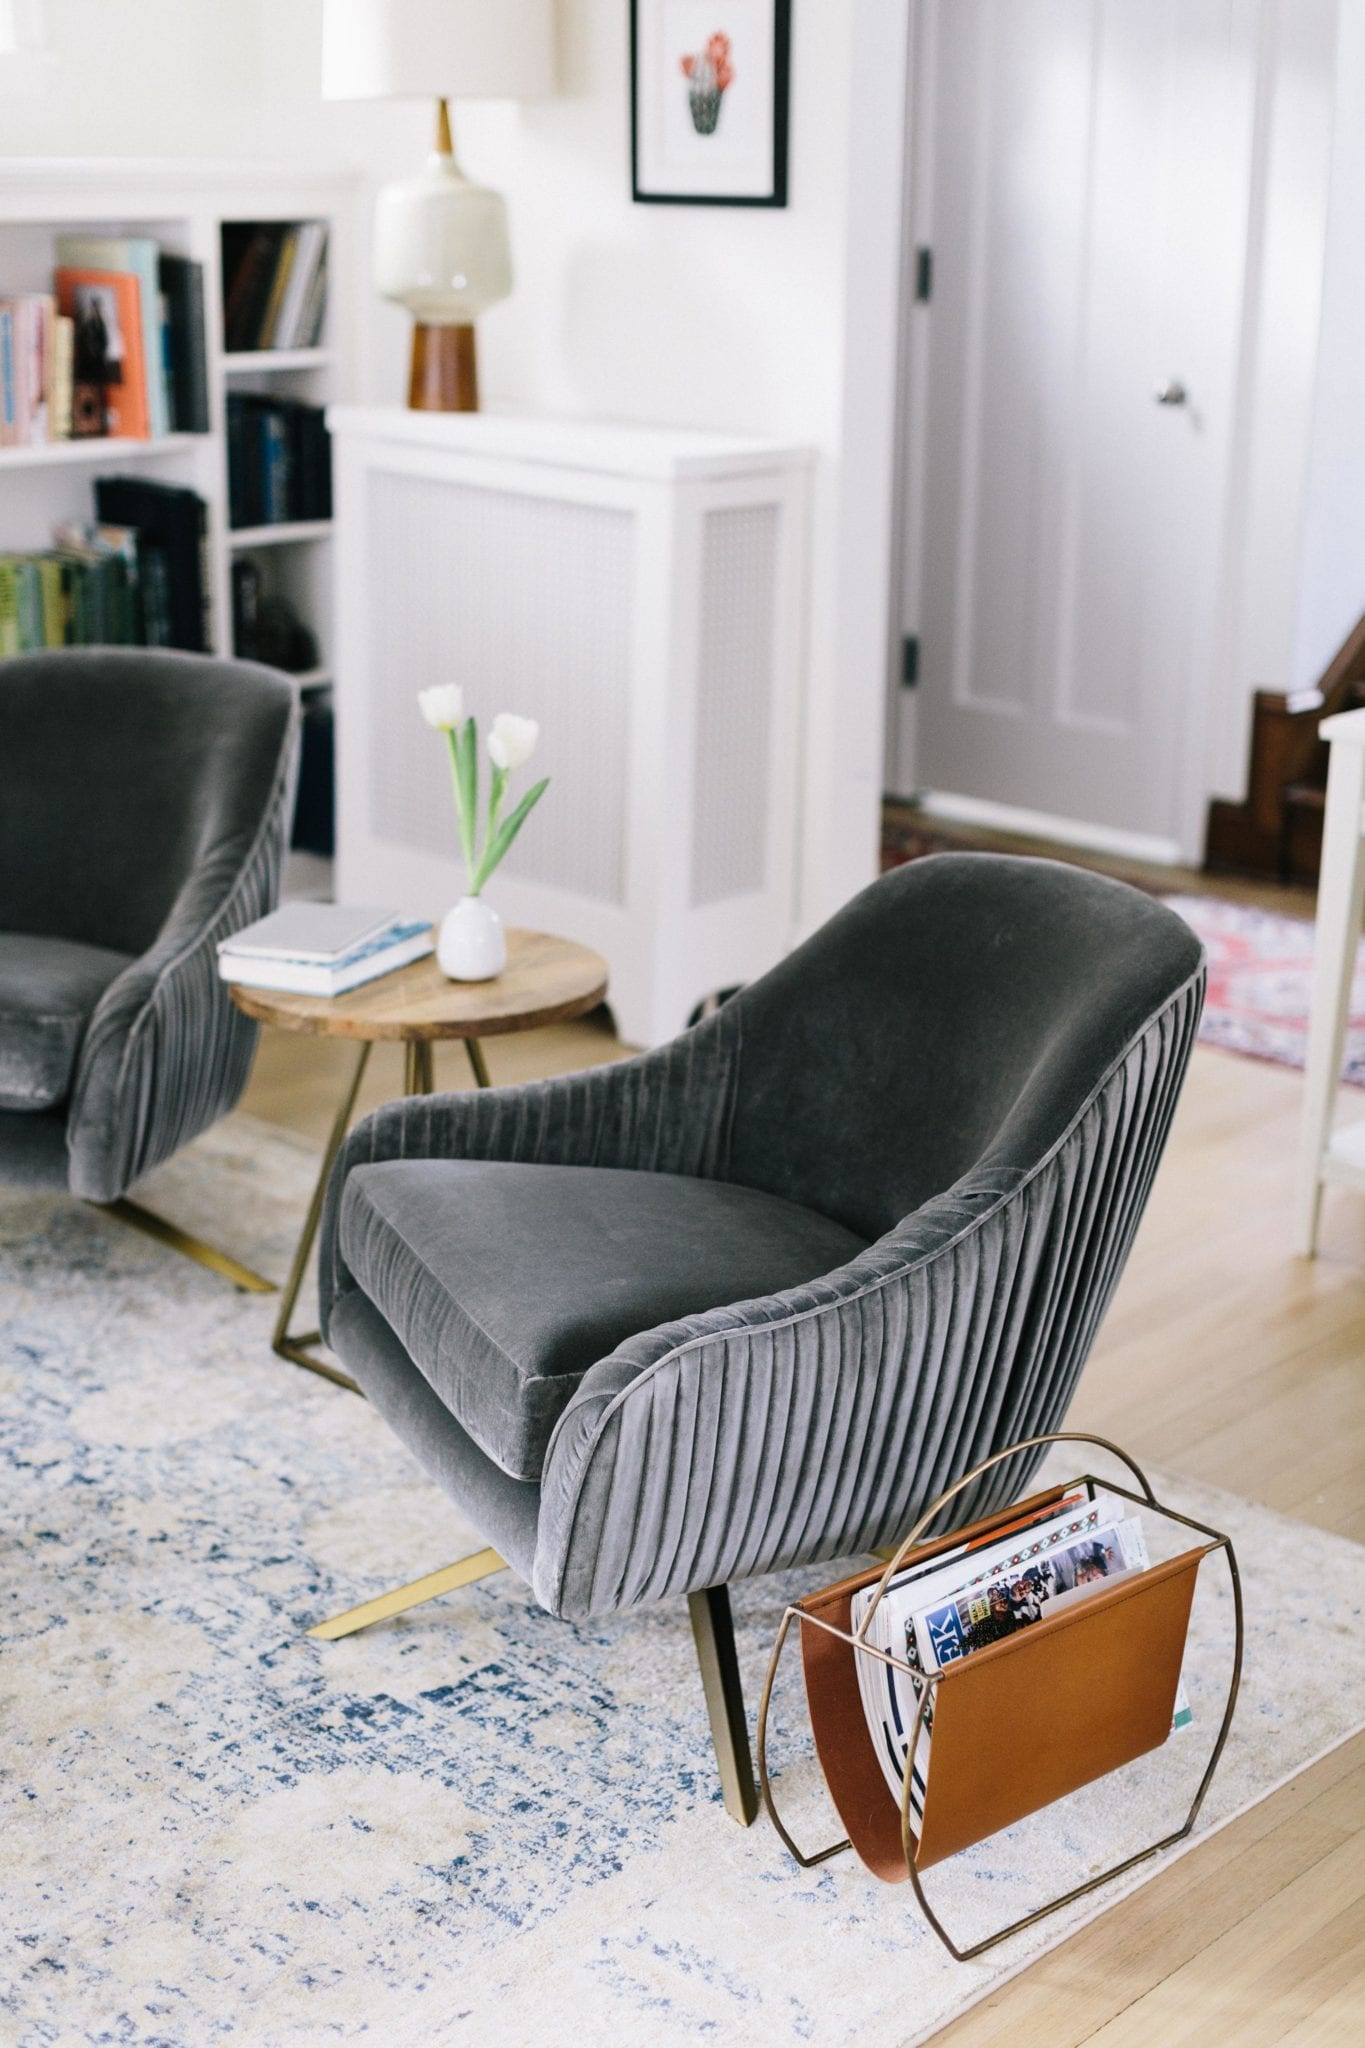 lake view by emerald home furnishings nicholas motion sofa contemporary white set it takes two or a west elm roar rabbit giveaway wit delight w d jan18 8 5